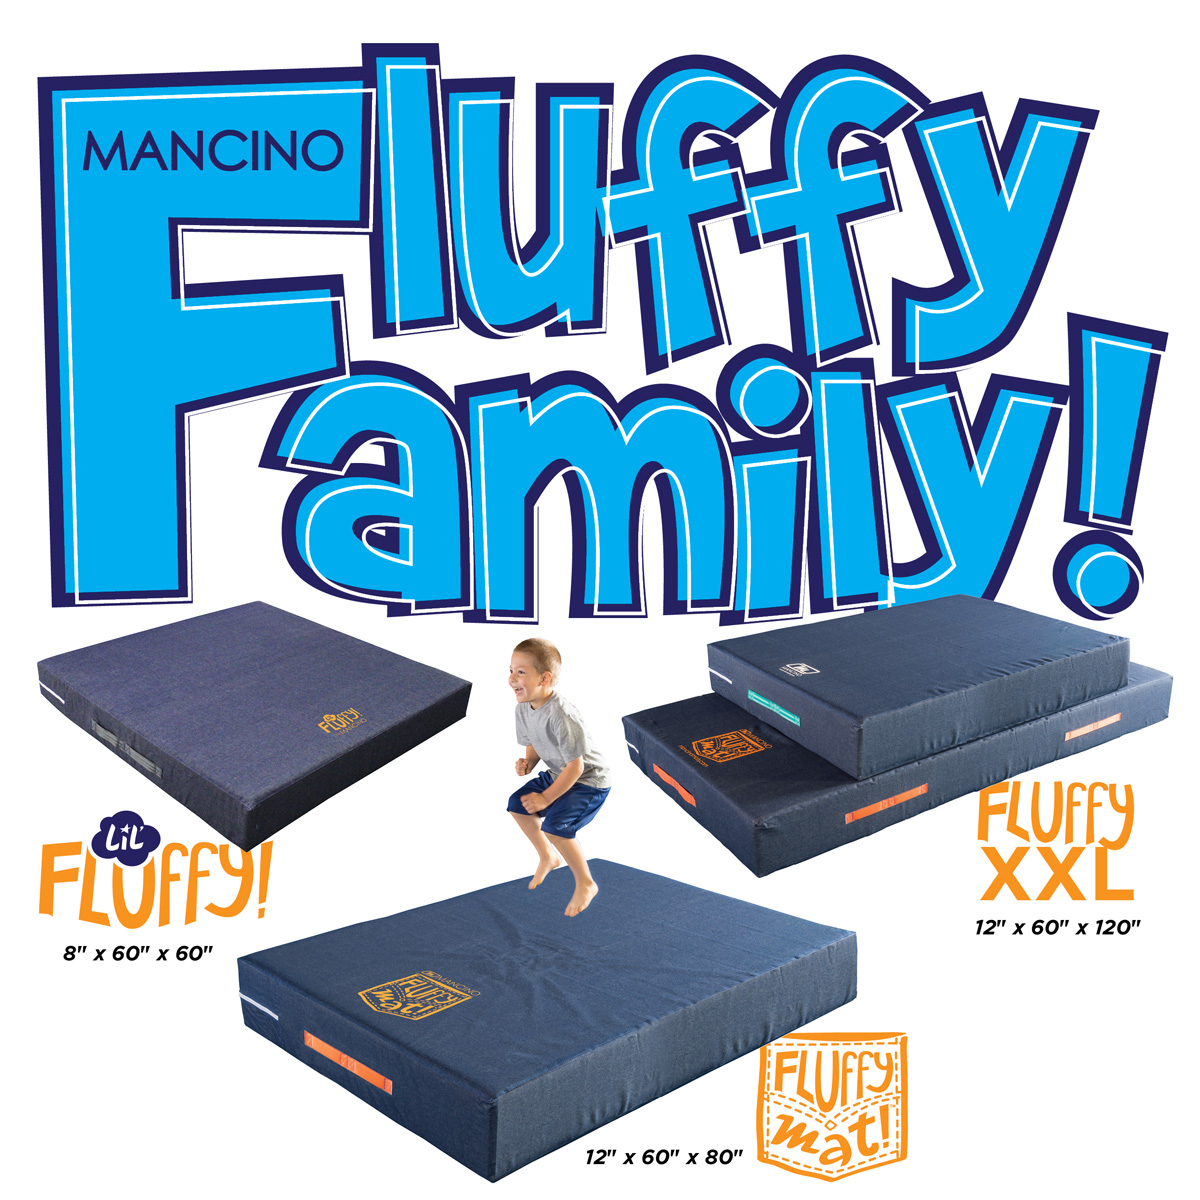 different sizes of mancino fluffy mats